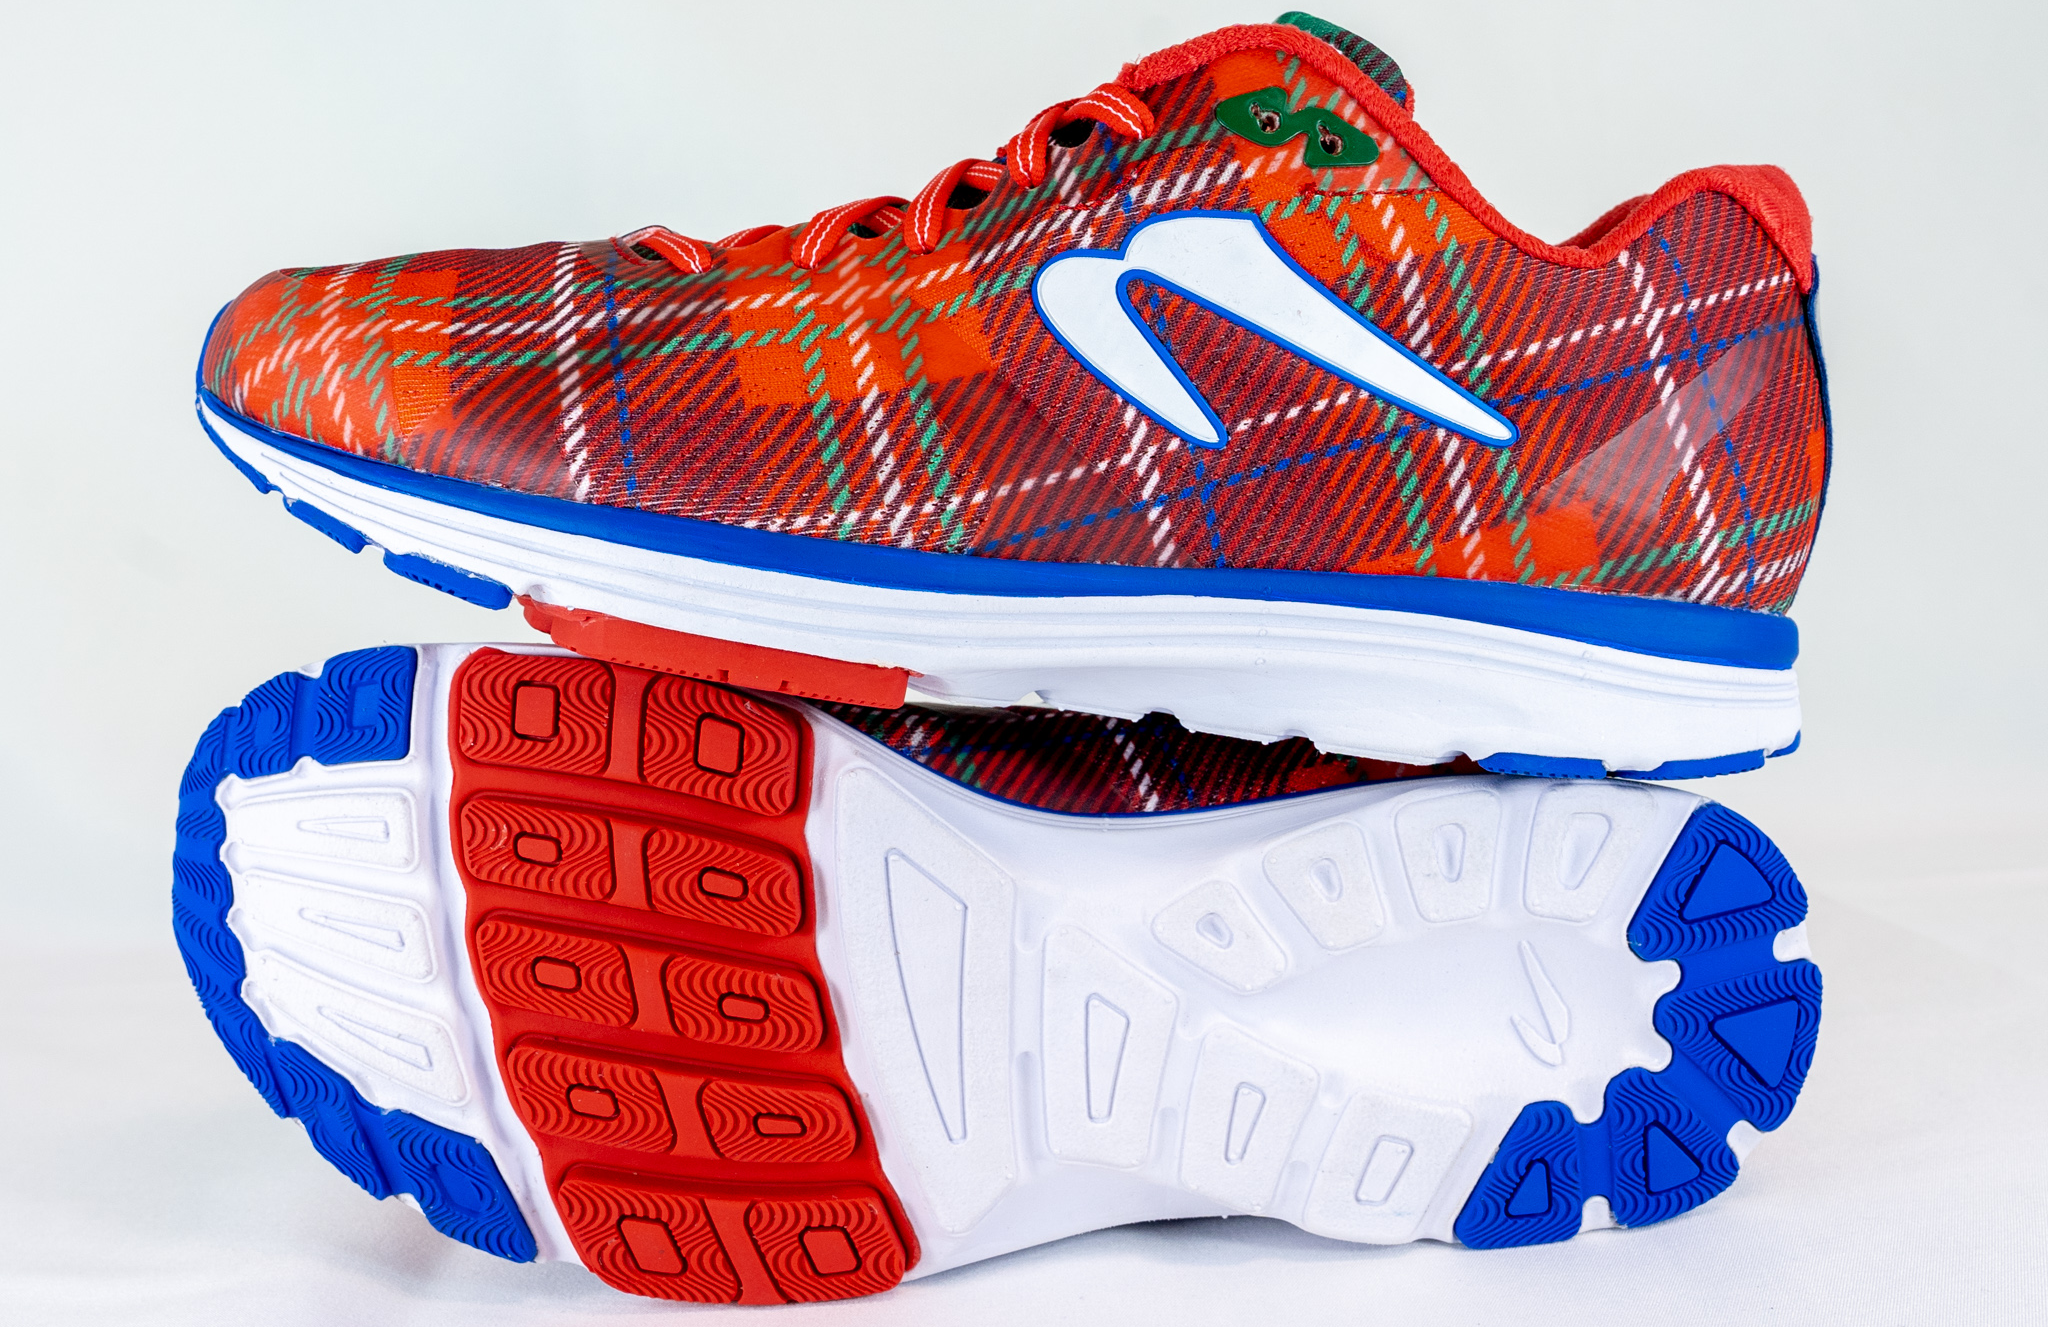 Holiday Plaid Limited Edition running shoe